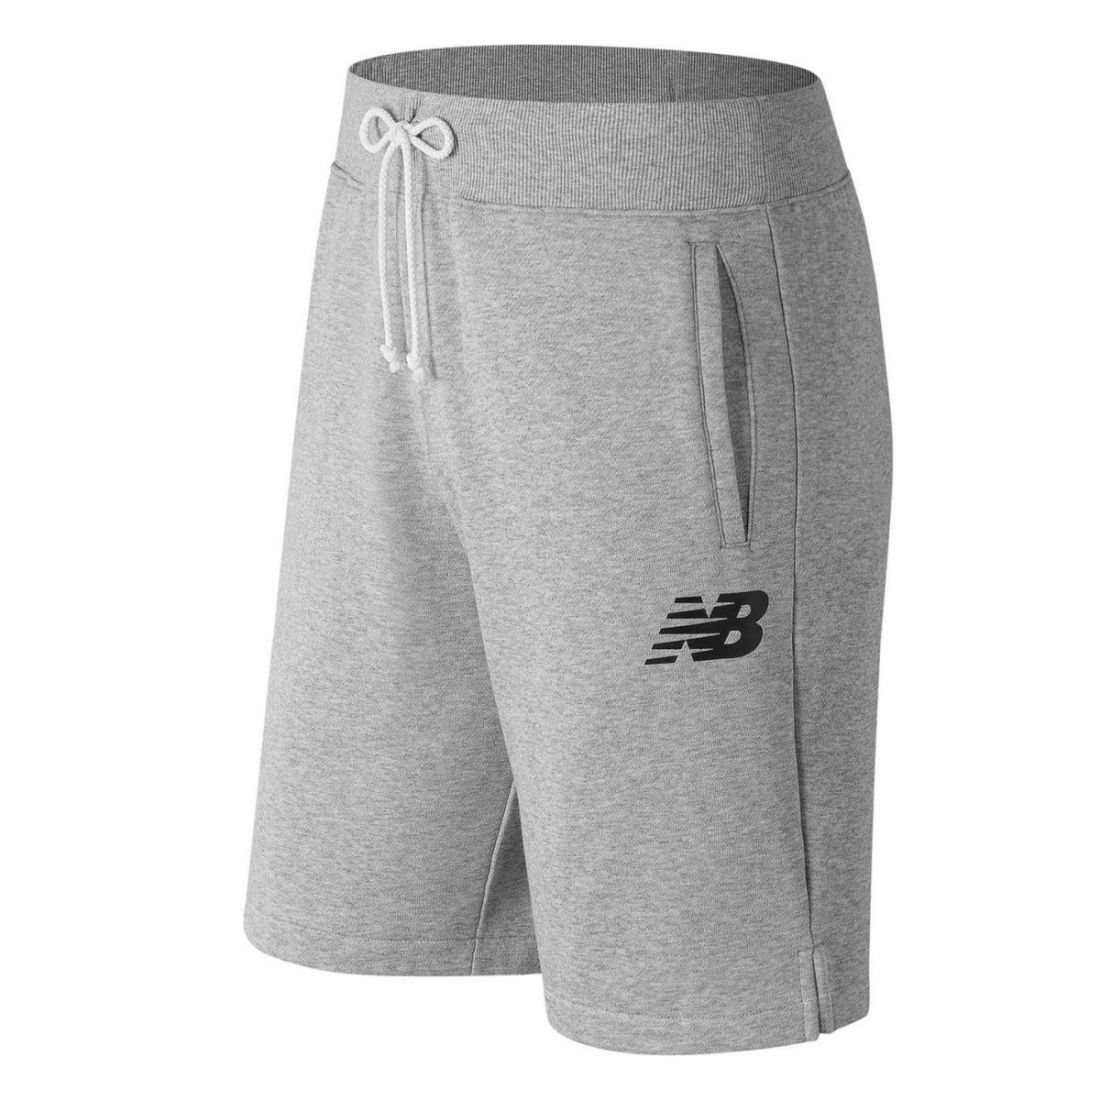 2a4759a84a386 Image is loading New-Balance-Mens-Fleece-Short-Shorts-Pants-Trousers-